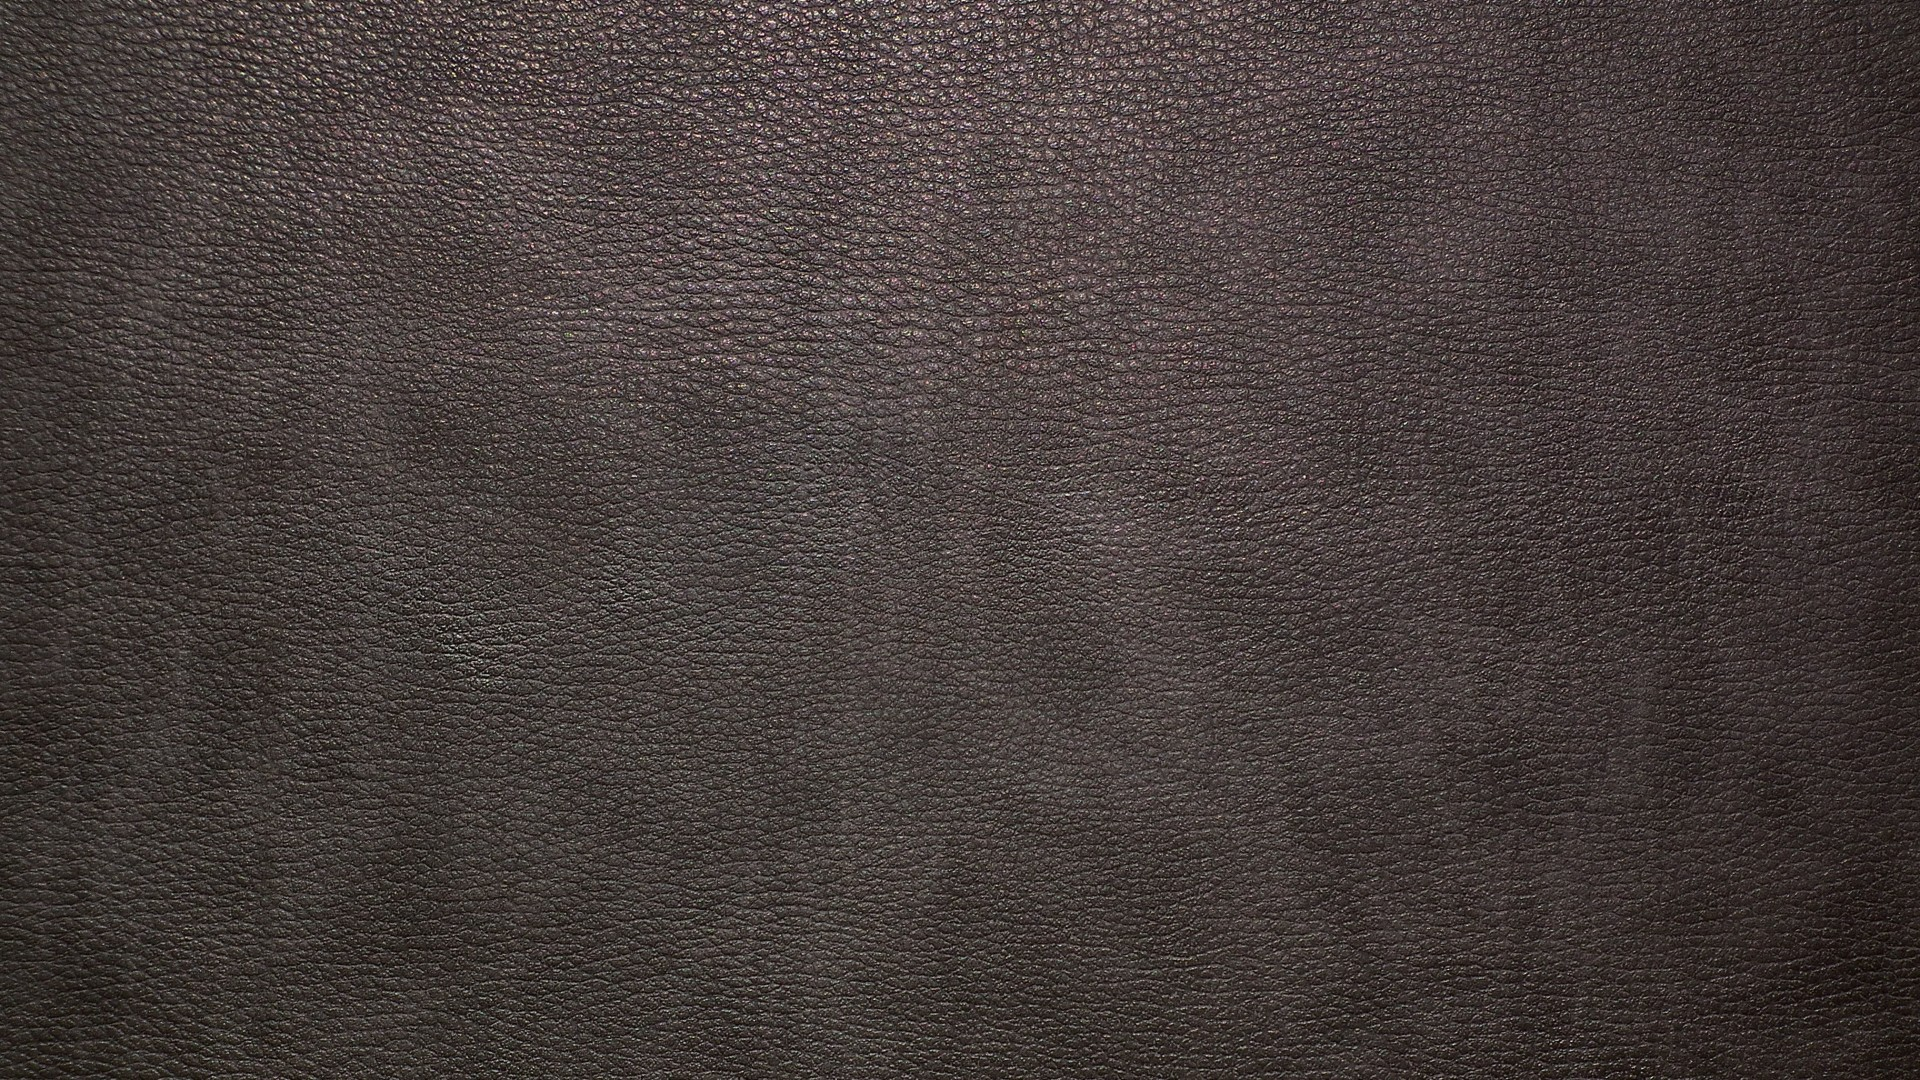 Leather Wallpapers Archives - HDWallSource.com ...